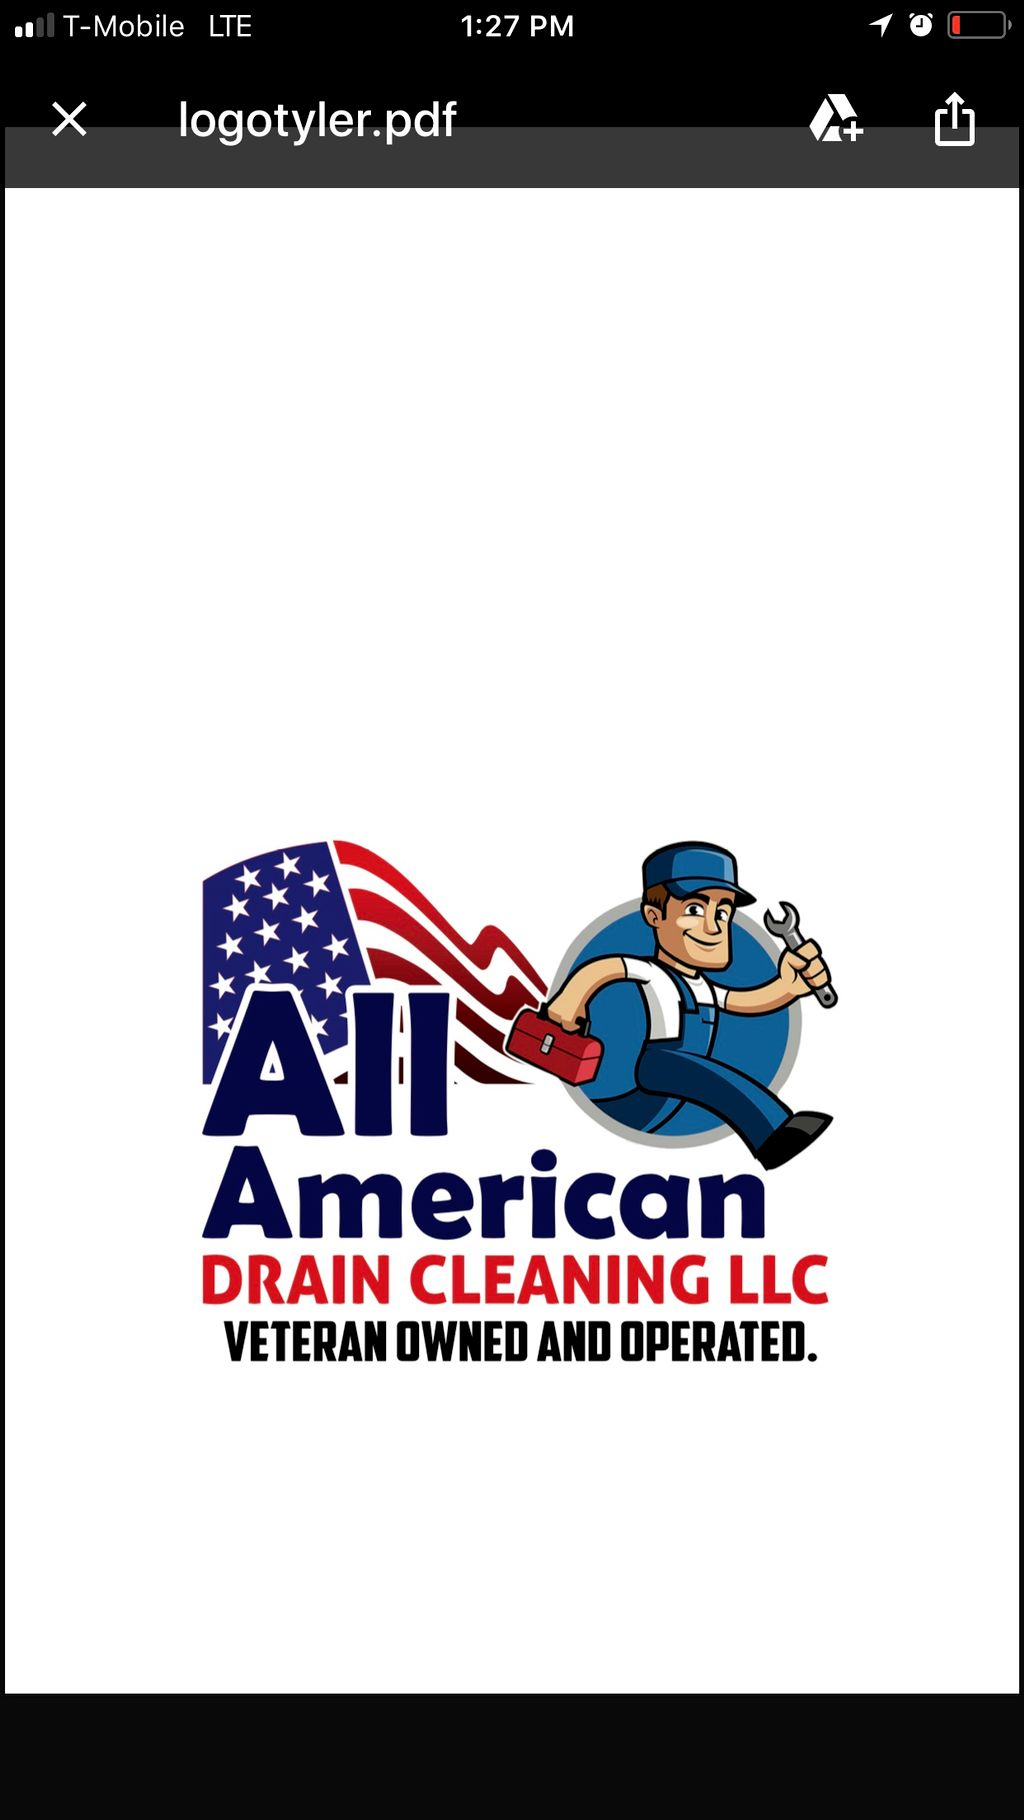 All American Drain Cleaning LLC